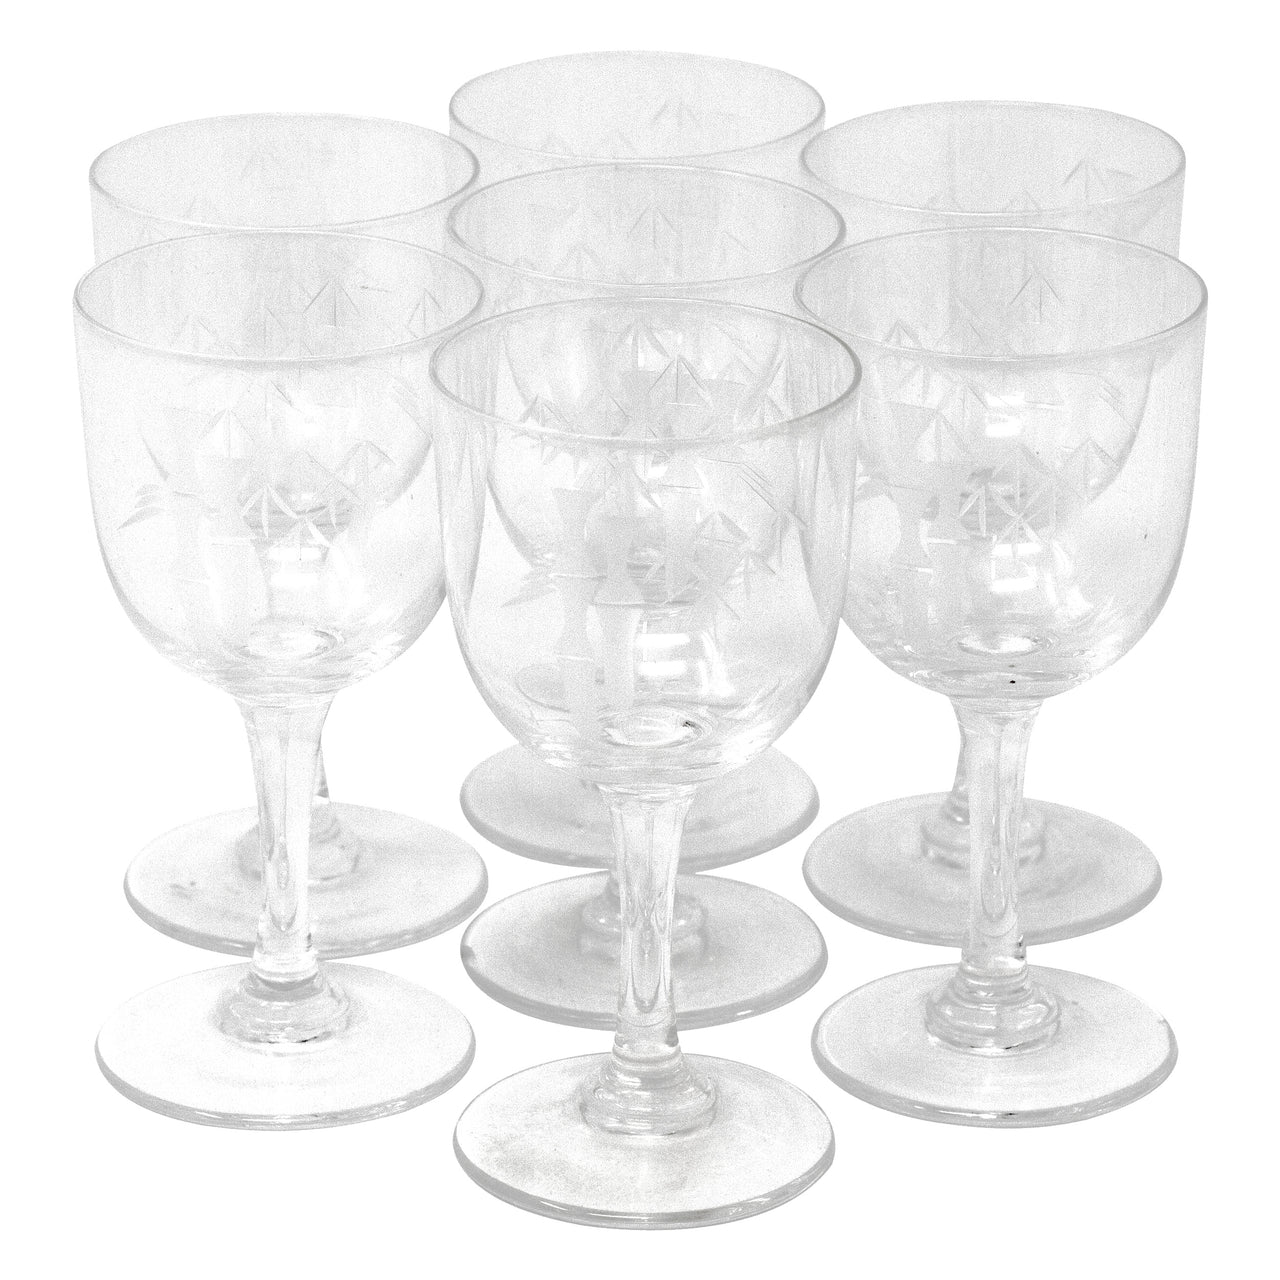 Vintage Mid Century Etched Bamboo Cordial Glasses | The Hour Shop